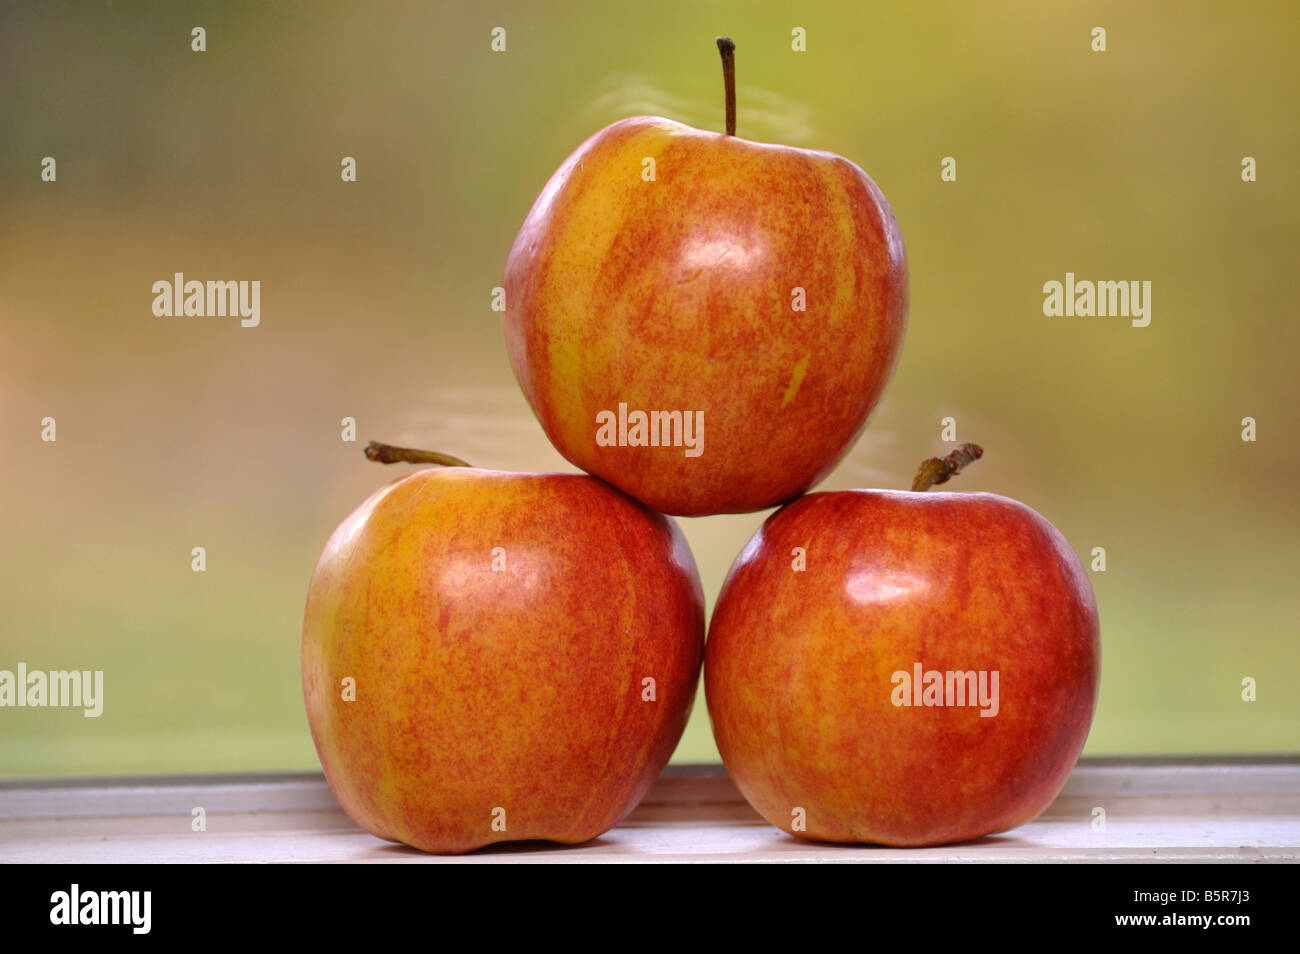 Three apples stacked on a window sill Stock Photo